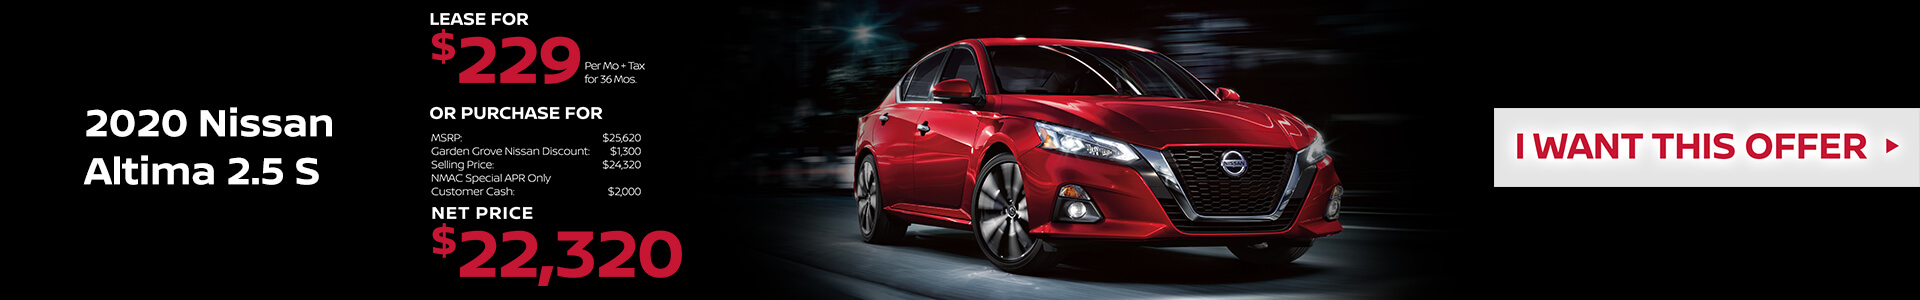 2020 Nissan Altima Lease for $229